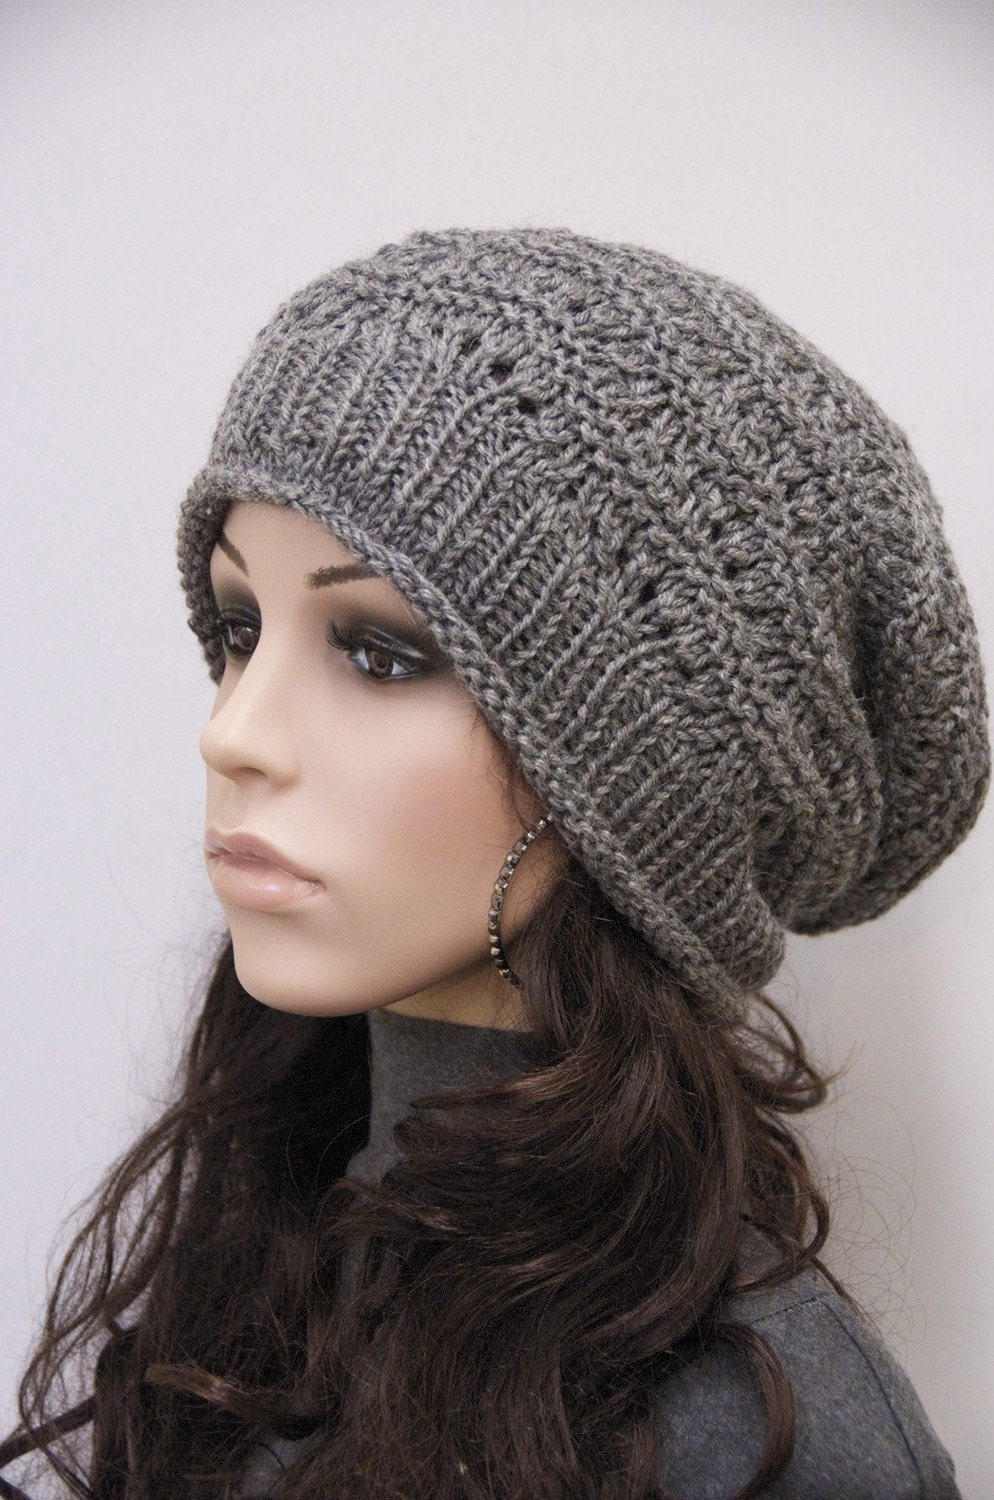 Hand Knit hat woman hat winter hat Charcoal Wool Hat dark grey